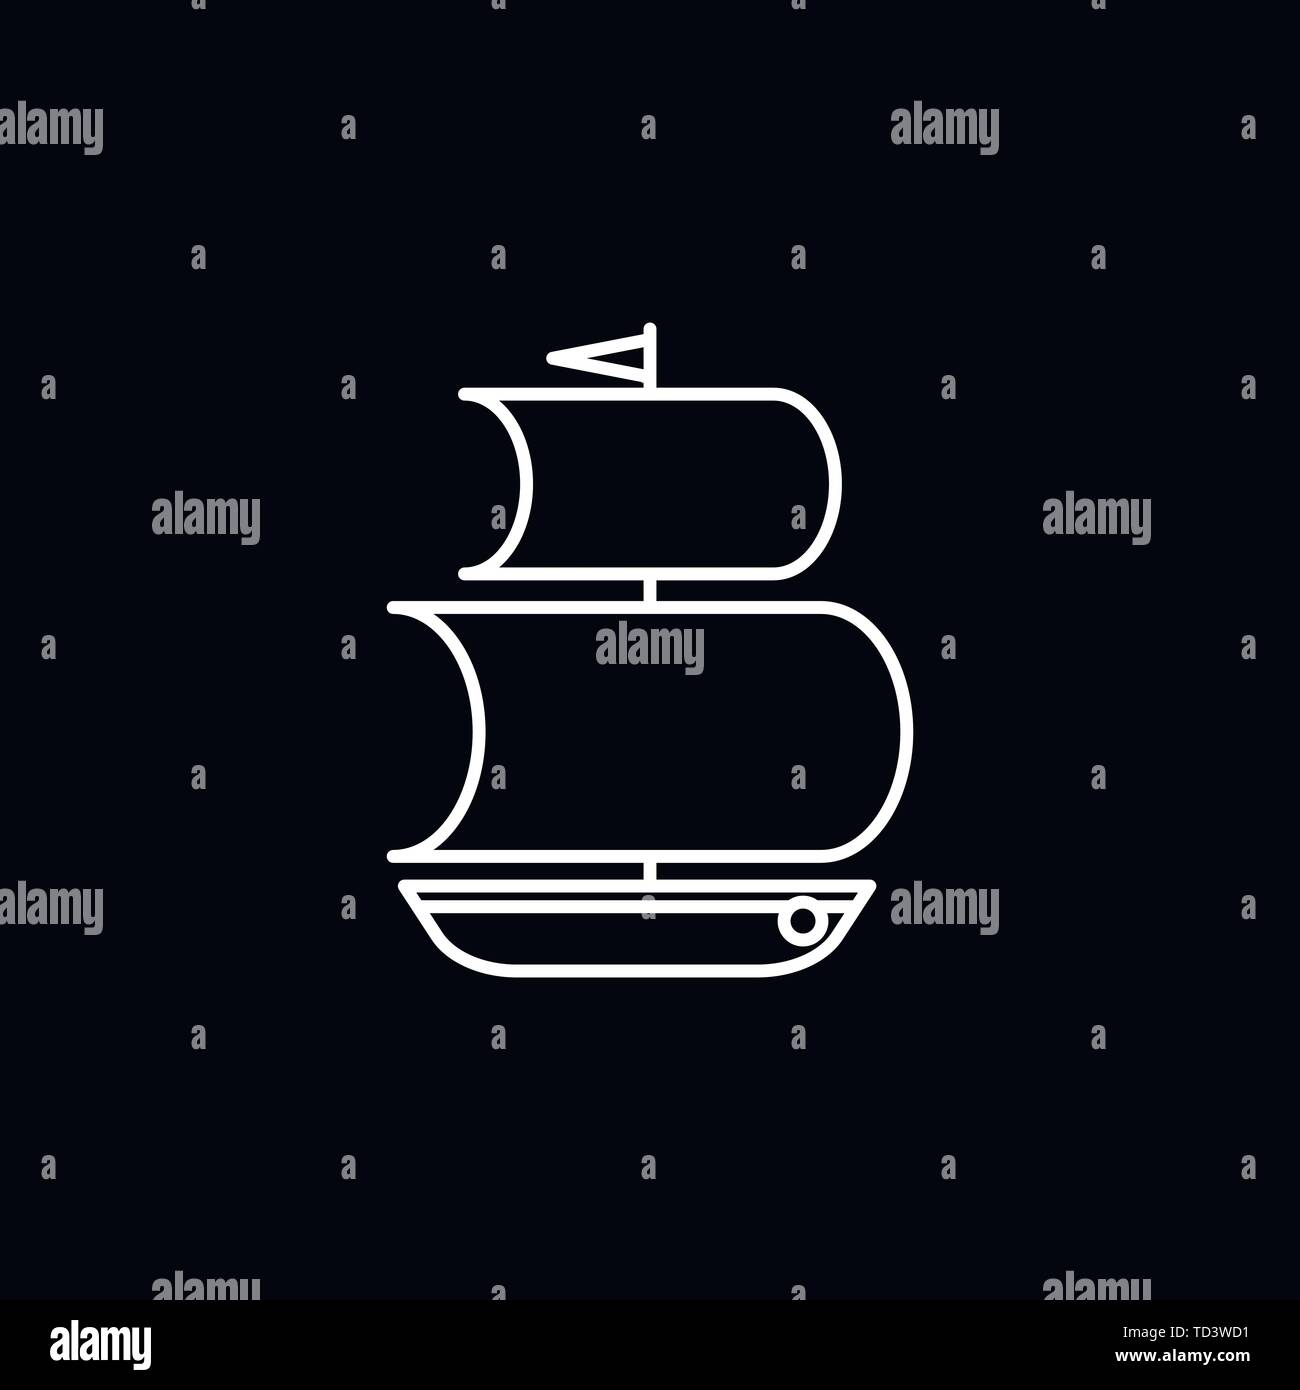 Boat icon vector in trendy flat style isolated on white background. boat icon image, boat icon illustration - Stock Image